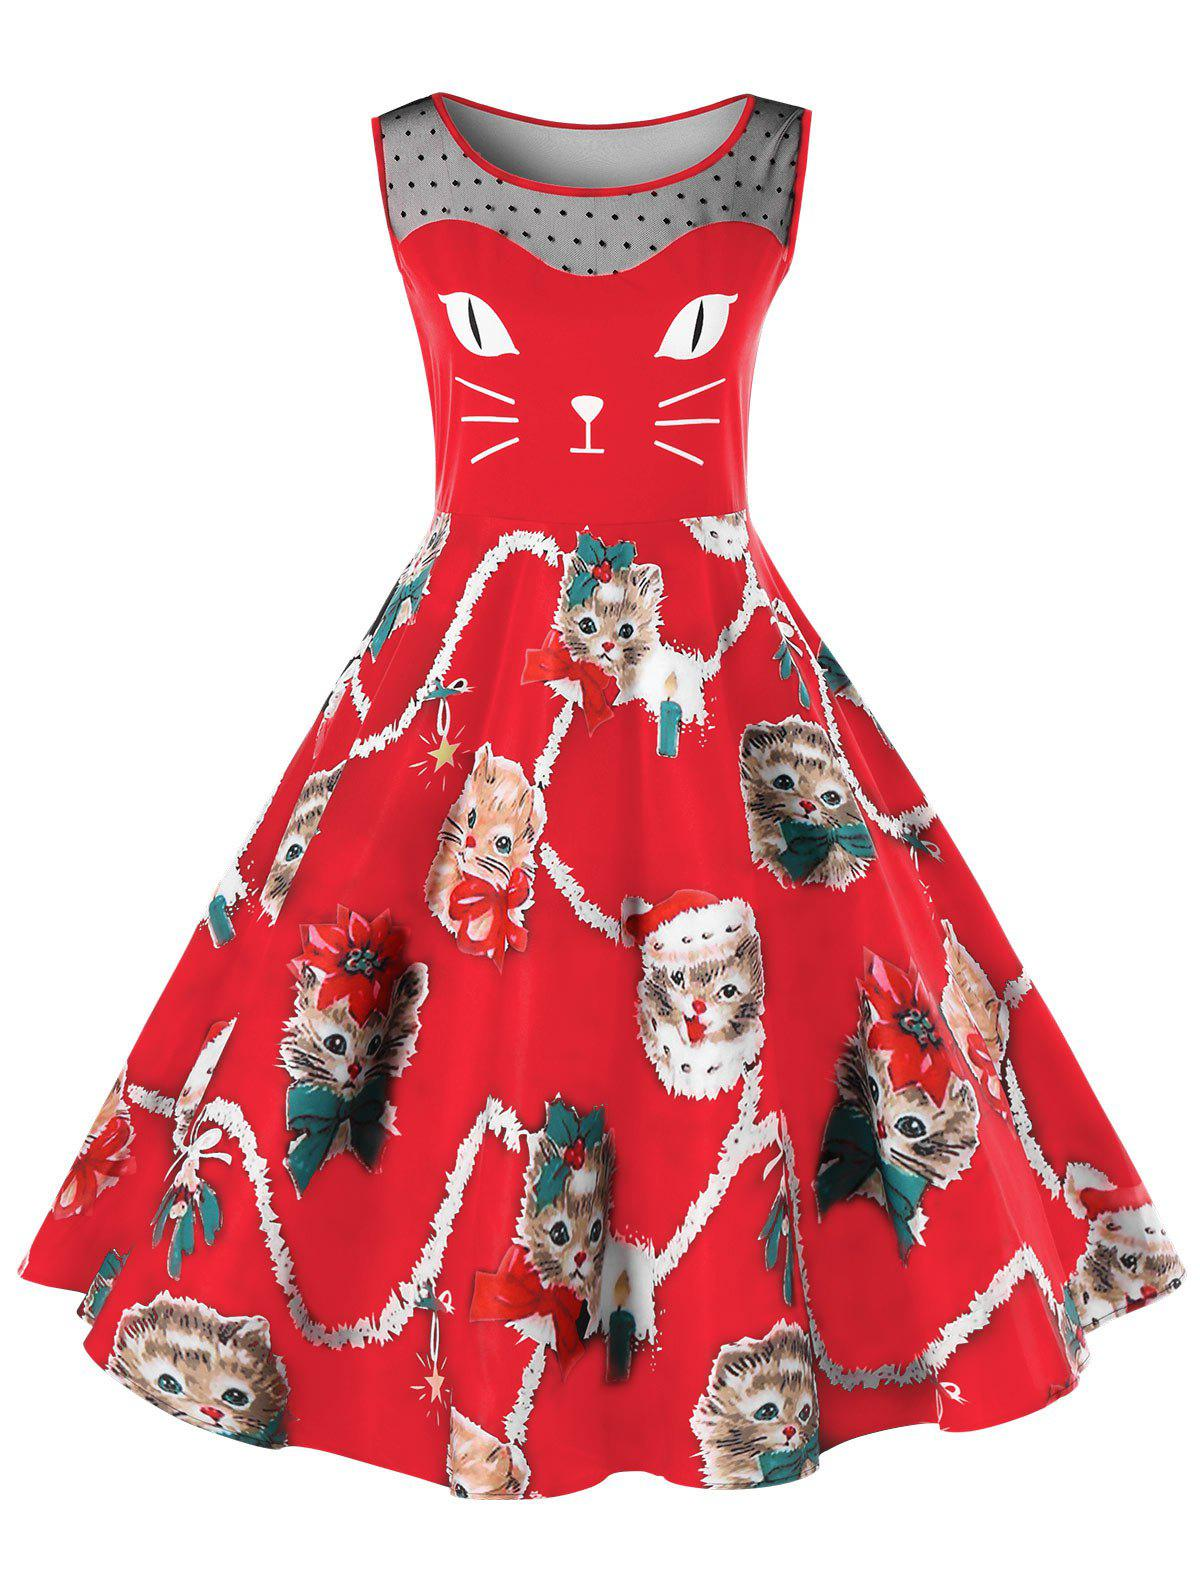 Christmas Plus Size Kitten Pattern Swing DressWOMEN<br><br>Size: 2XL; Color: BRIGHT RED; Style: Vintage; Material: Polyester,Spandex; Silhouette: A-Line; Dresses Length: Knee-Length; Neckline: Round Collar; Sleeve Length: Sleeveless; Pattern Type: Animal; With Belt: No; Season: Fall,Spring,Summer; Weight: 0.3000kg; Package Contents: 1 x Dress;